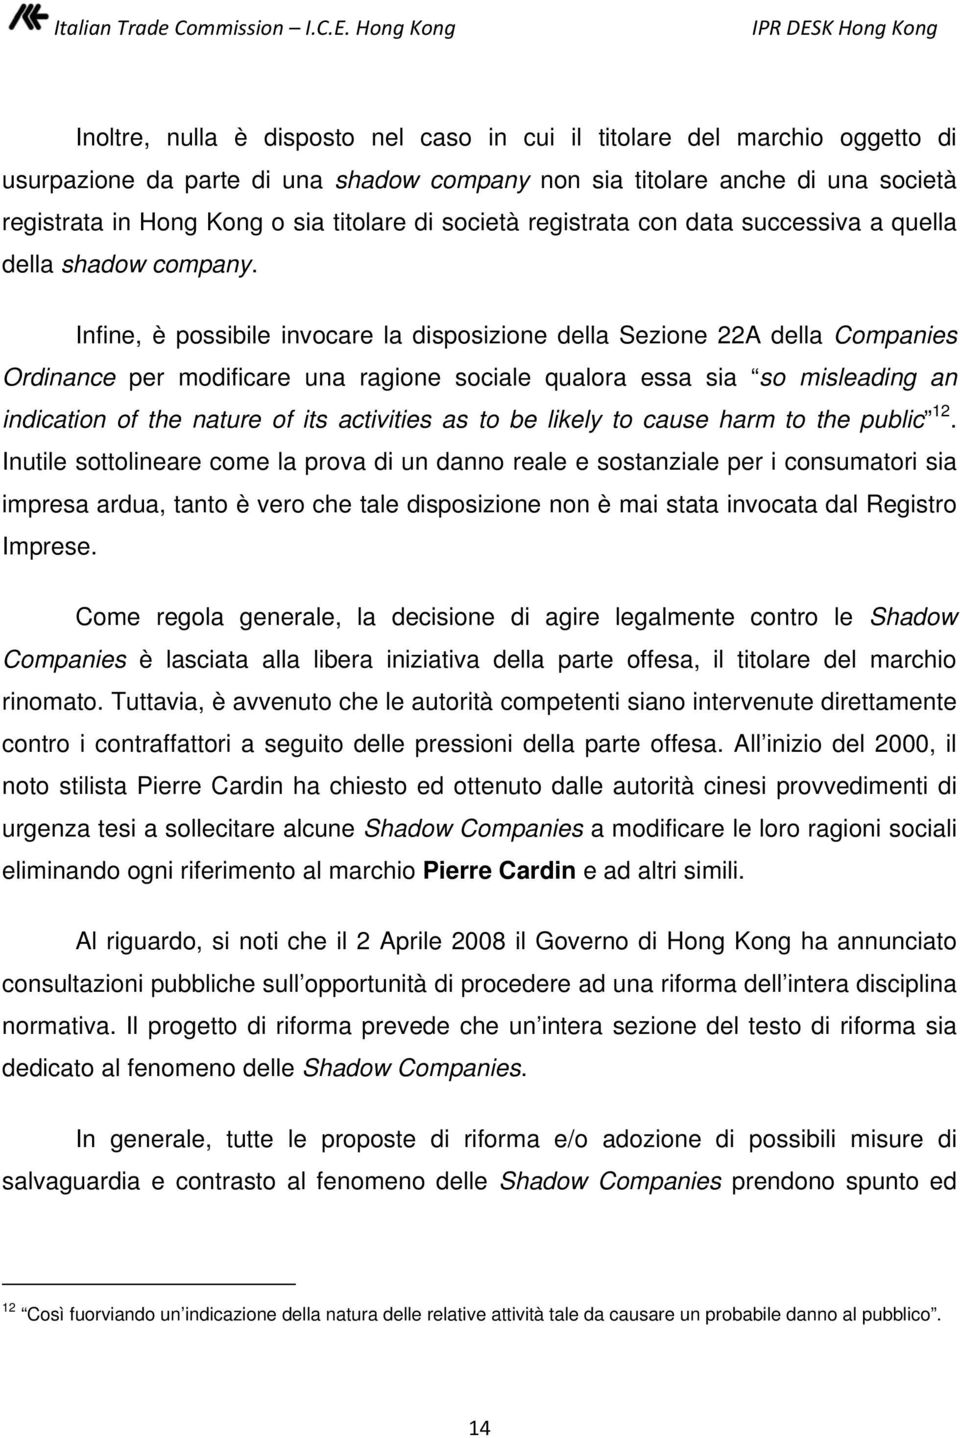 Infine, è possibile invocare la disposizione della Sezione 22A della Companies Ordinance per modificare una ragione sociale qualora essa sia so misleading an indication of the nature of its